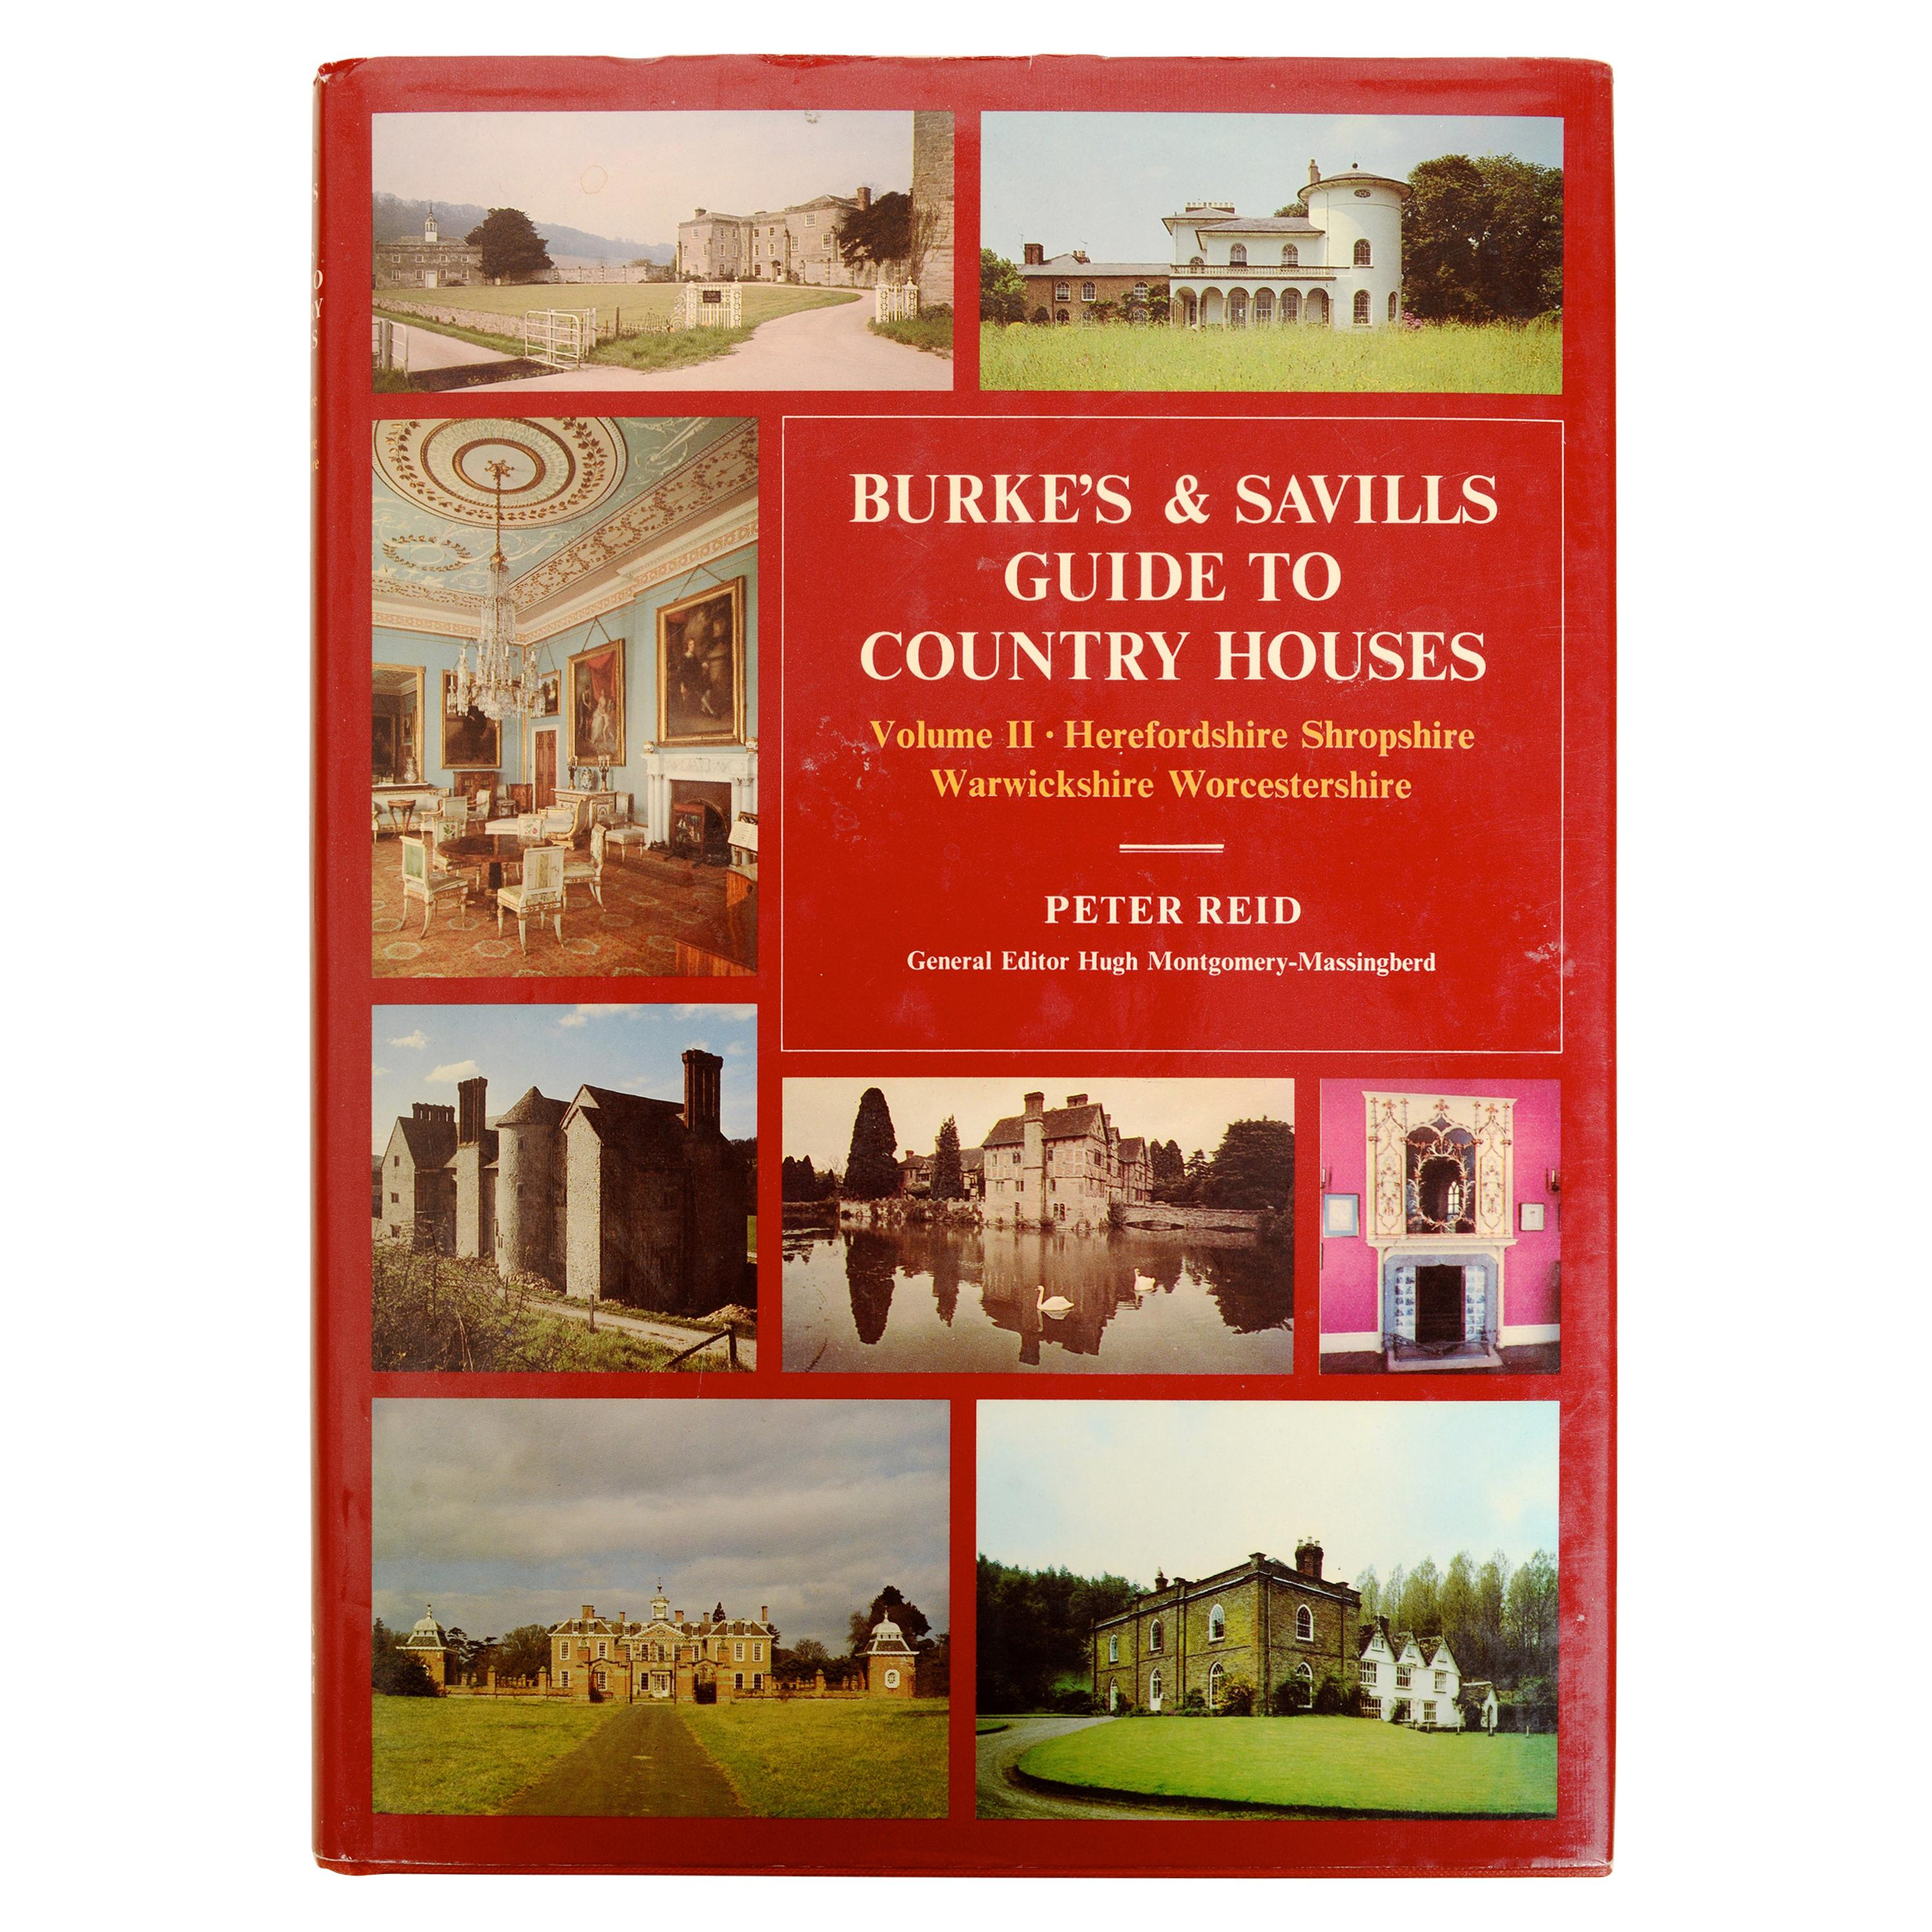 Burke's & Savills Guide to Country Houses: Volume II, First Edition